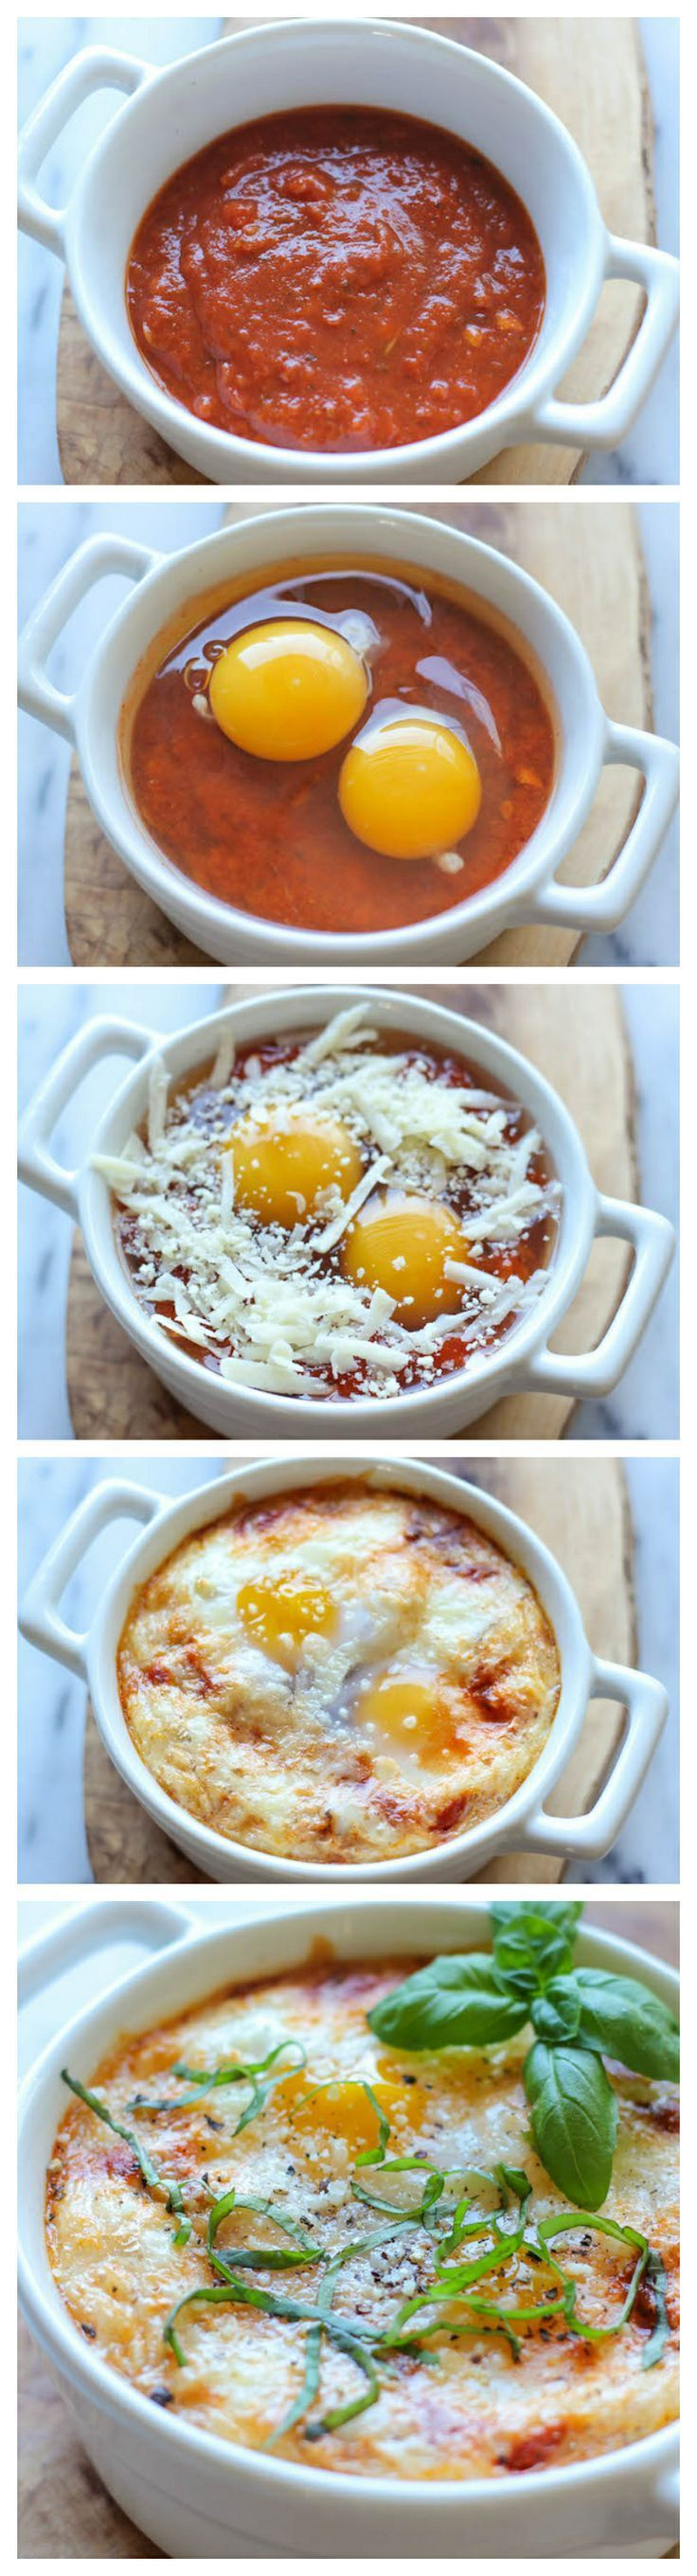 Italian Baked Eggs ...... Ingredients :  1 cup marinara sauce 4 large eggs 1/4 cup fat free or lowfat milk 1/4 cup shredded gruyere cheese 2 tablespoons grated Parmesan Kosher salt and freshly ground black pepper, to taste 1/4 cup basil leaves, chiffonade ........ These marinara cheesy baked eggs can be made in just 10 minutes for a complete breakfast!